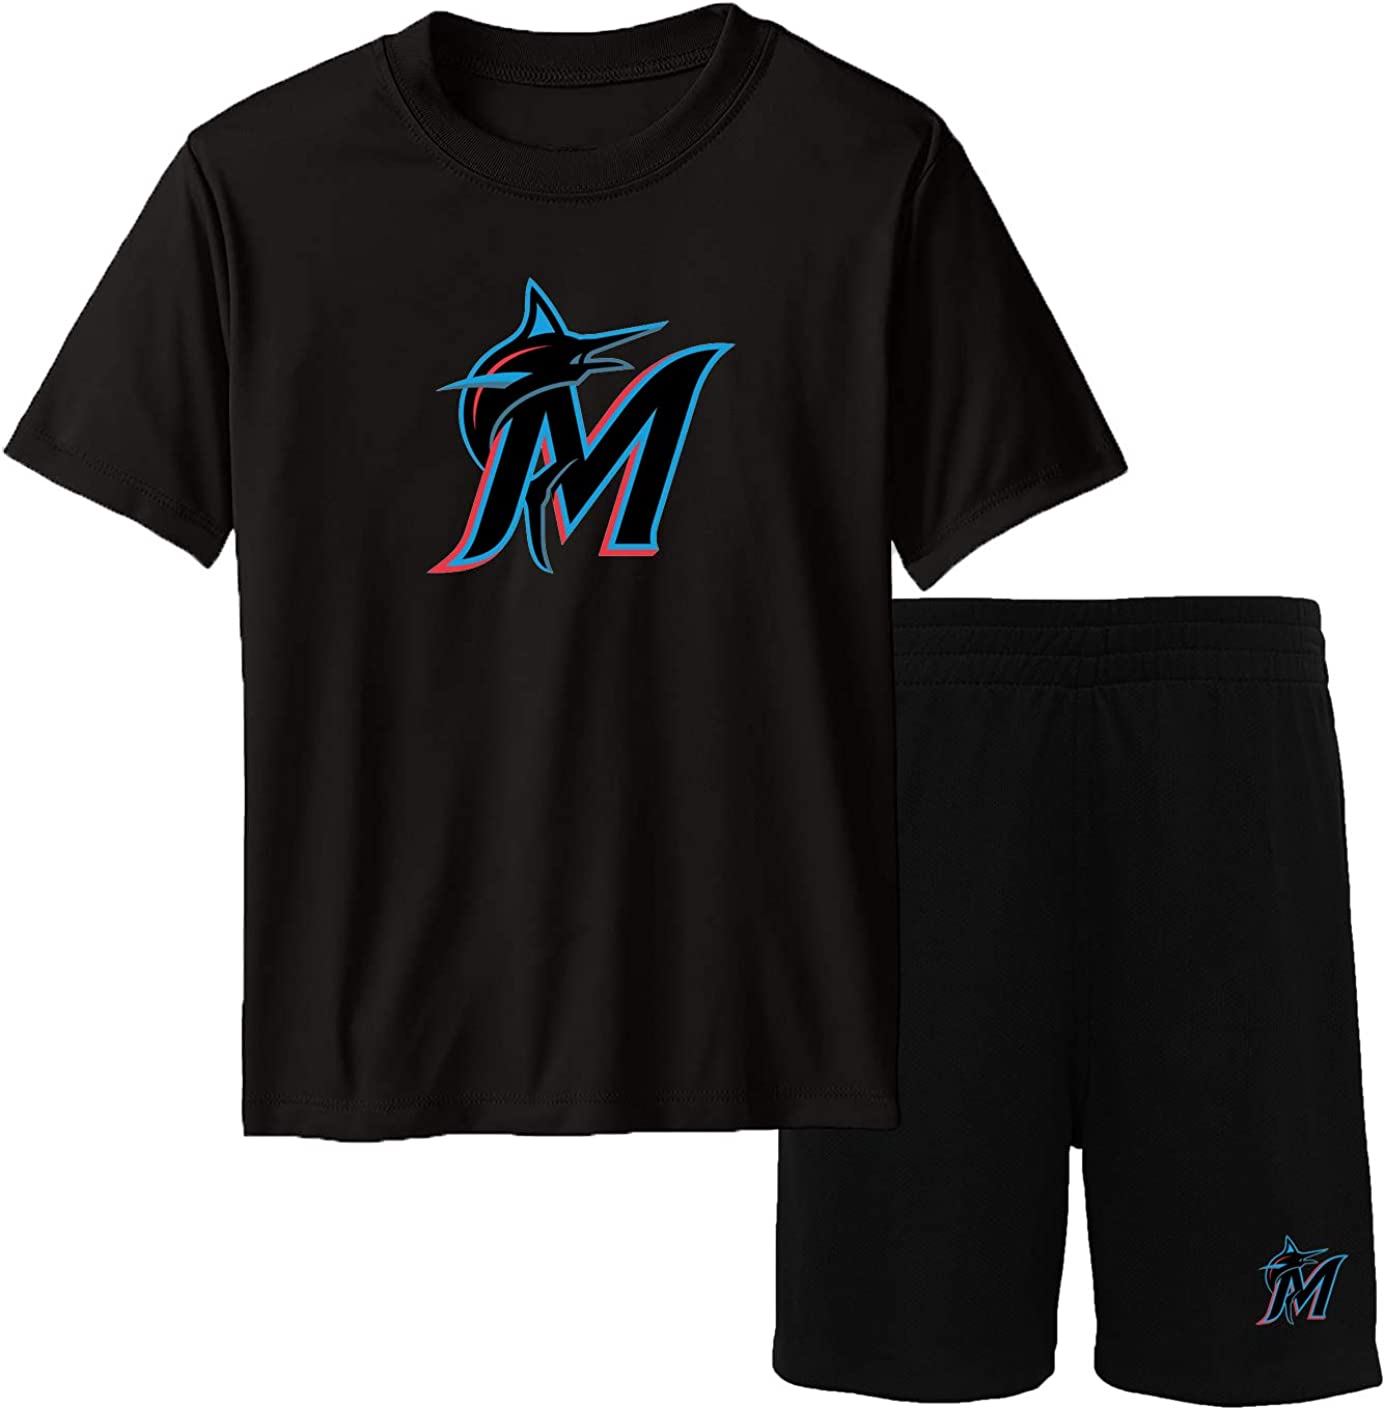 Outerstuff MLB Youth 8-20 Team Super sale Performance T- Super popular specialty store Color Logo Primary